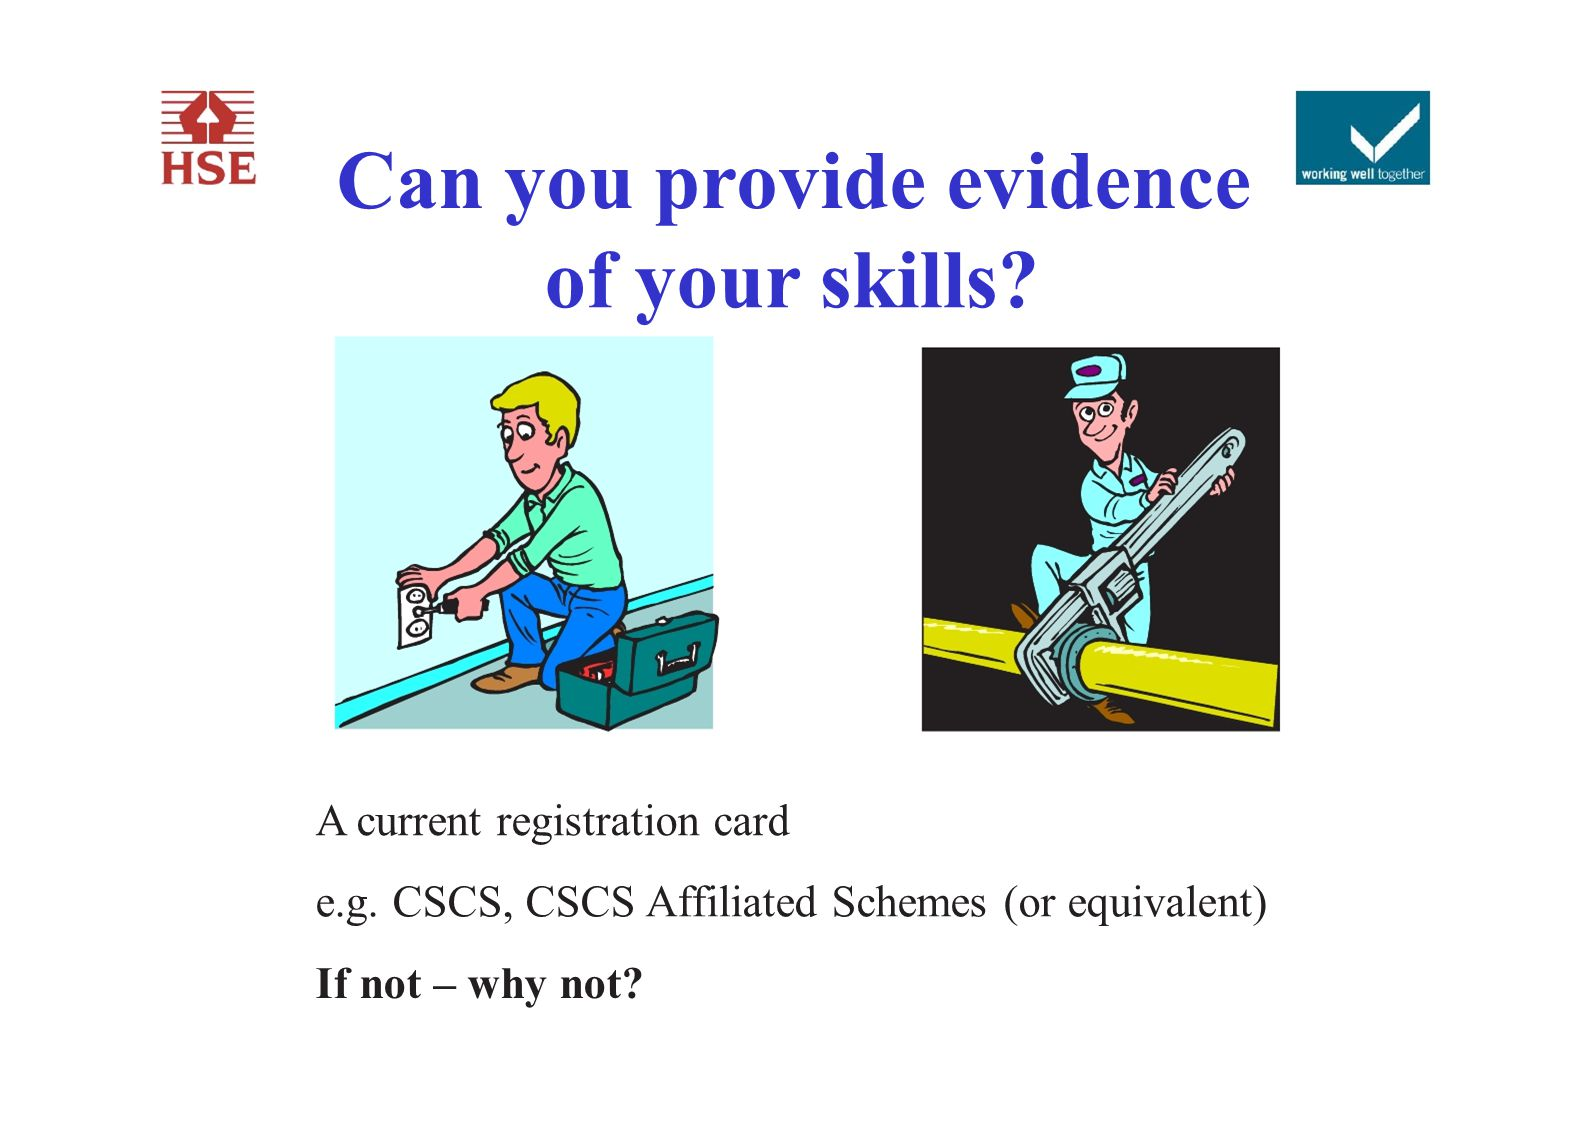 Can you provide evidence of your skills